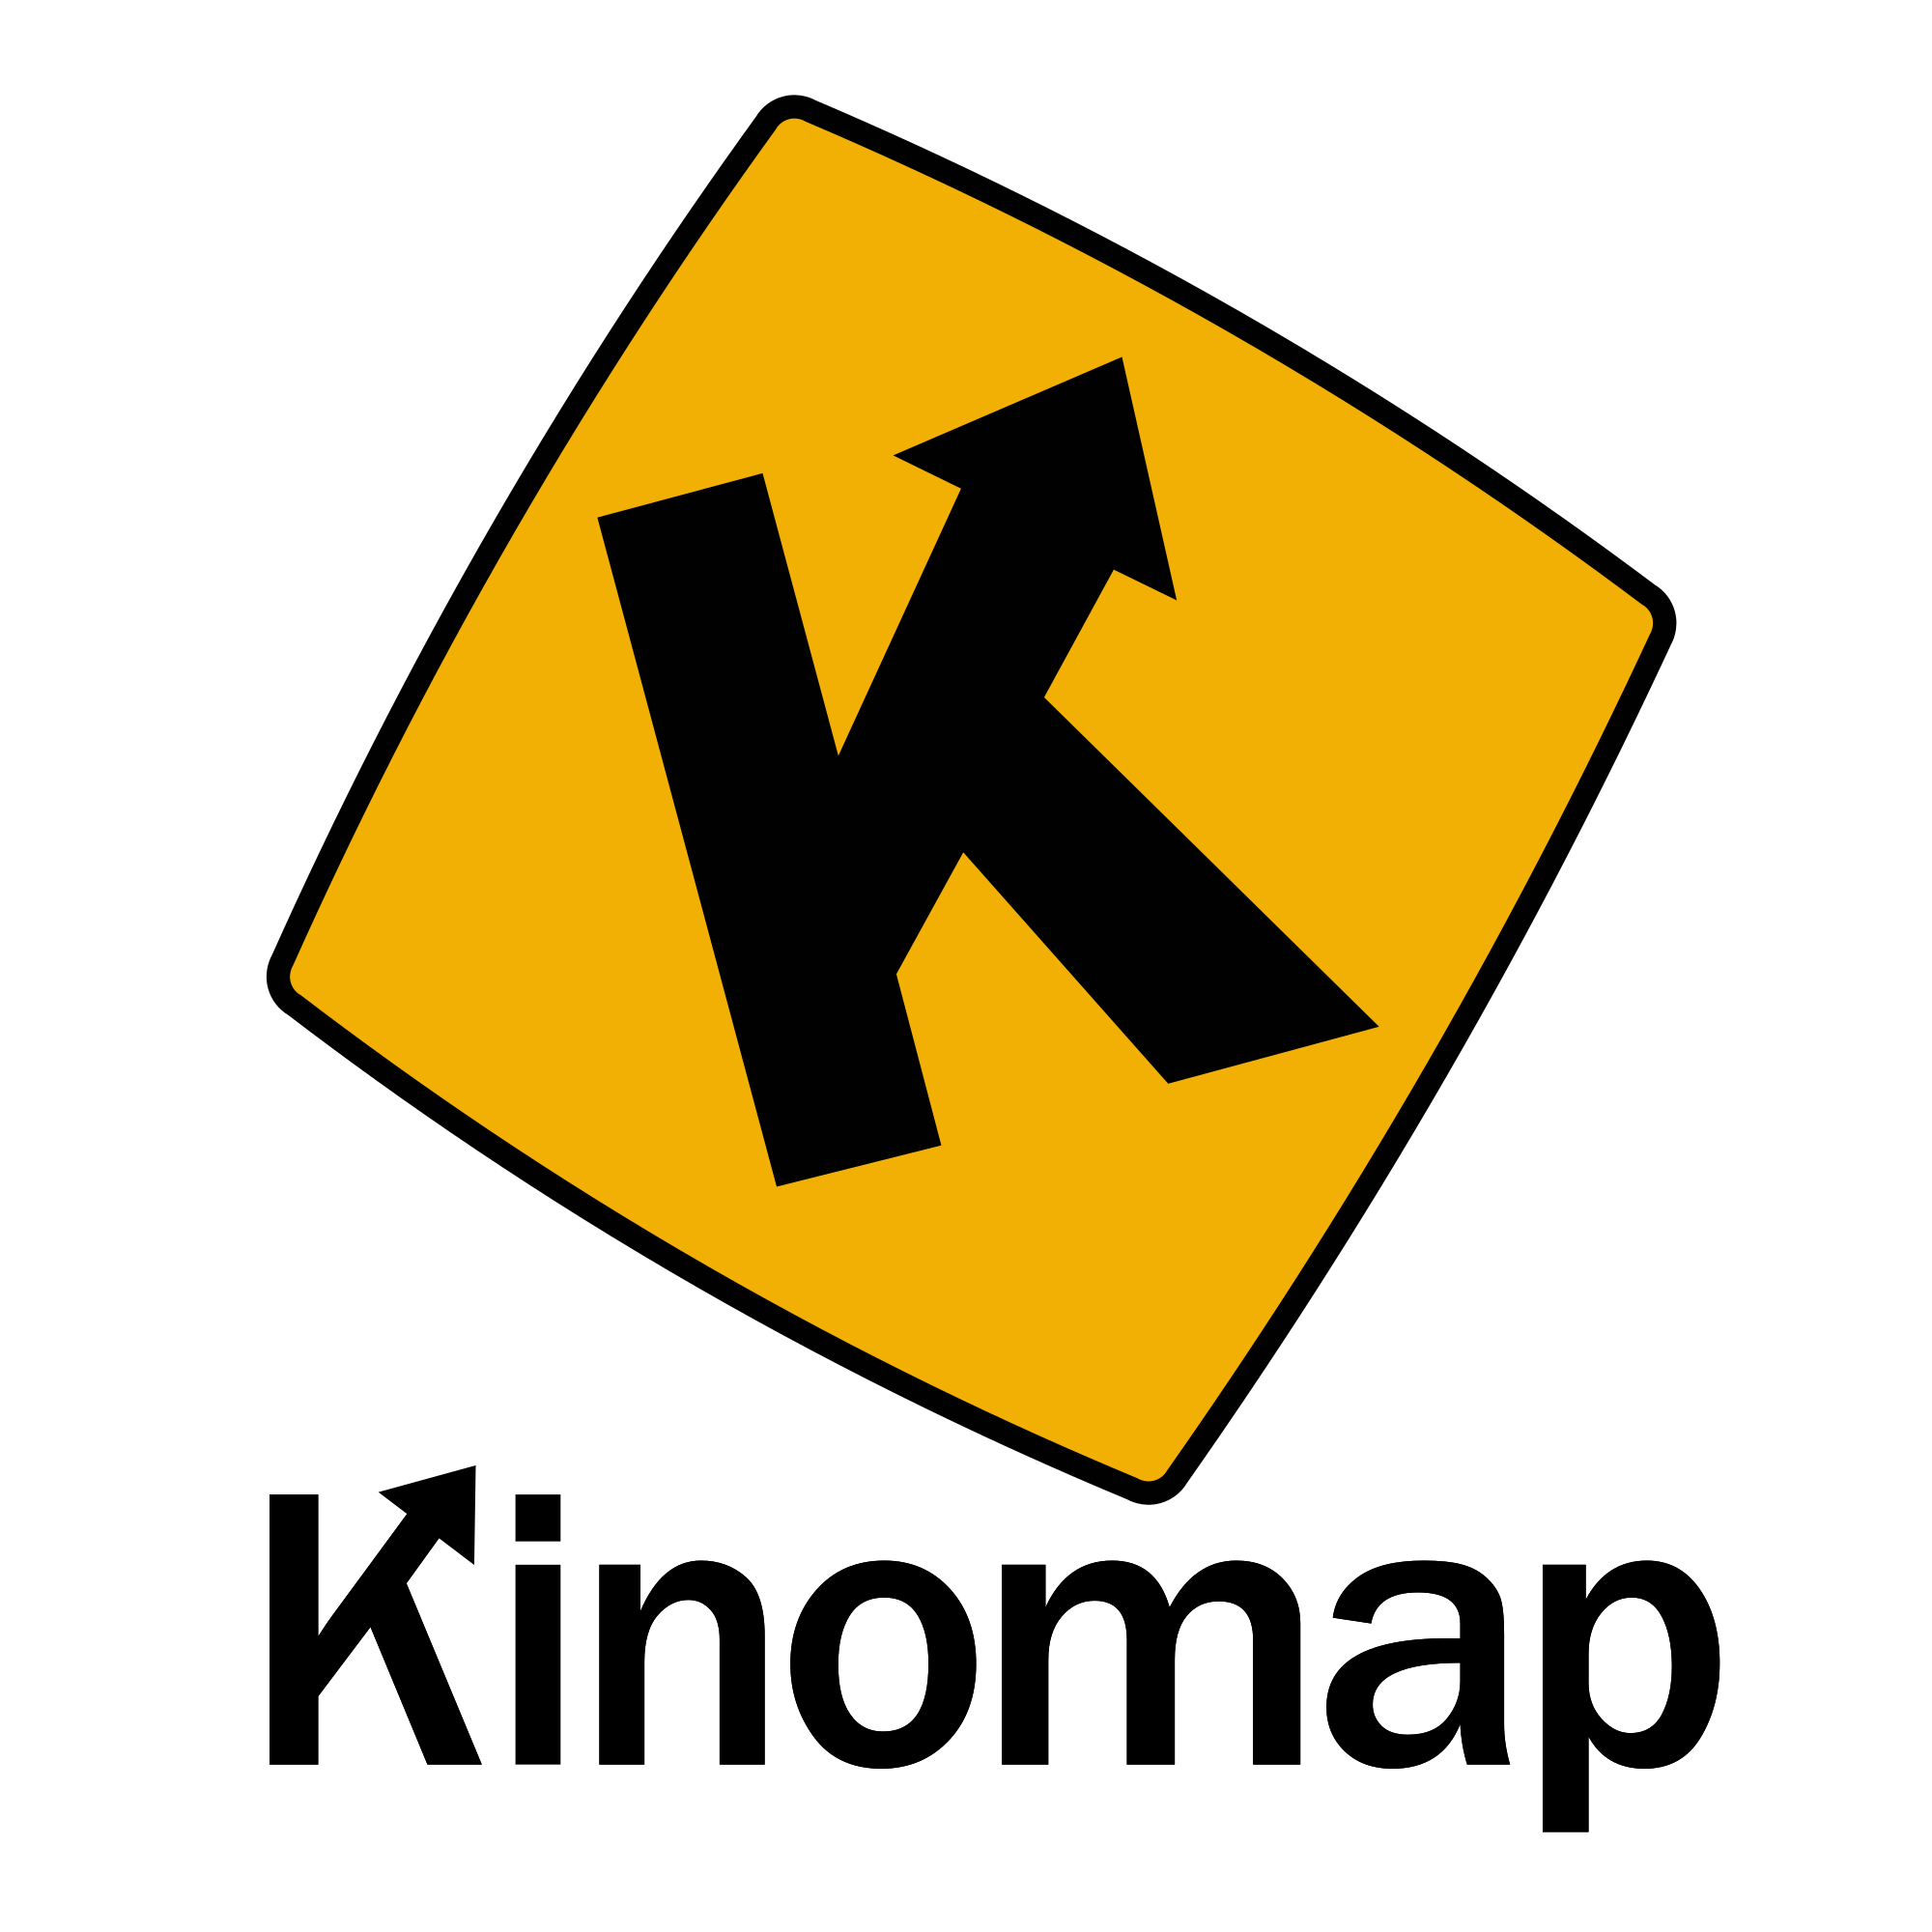 Kinomap_square_color_full.png